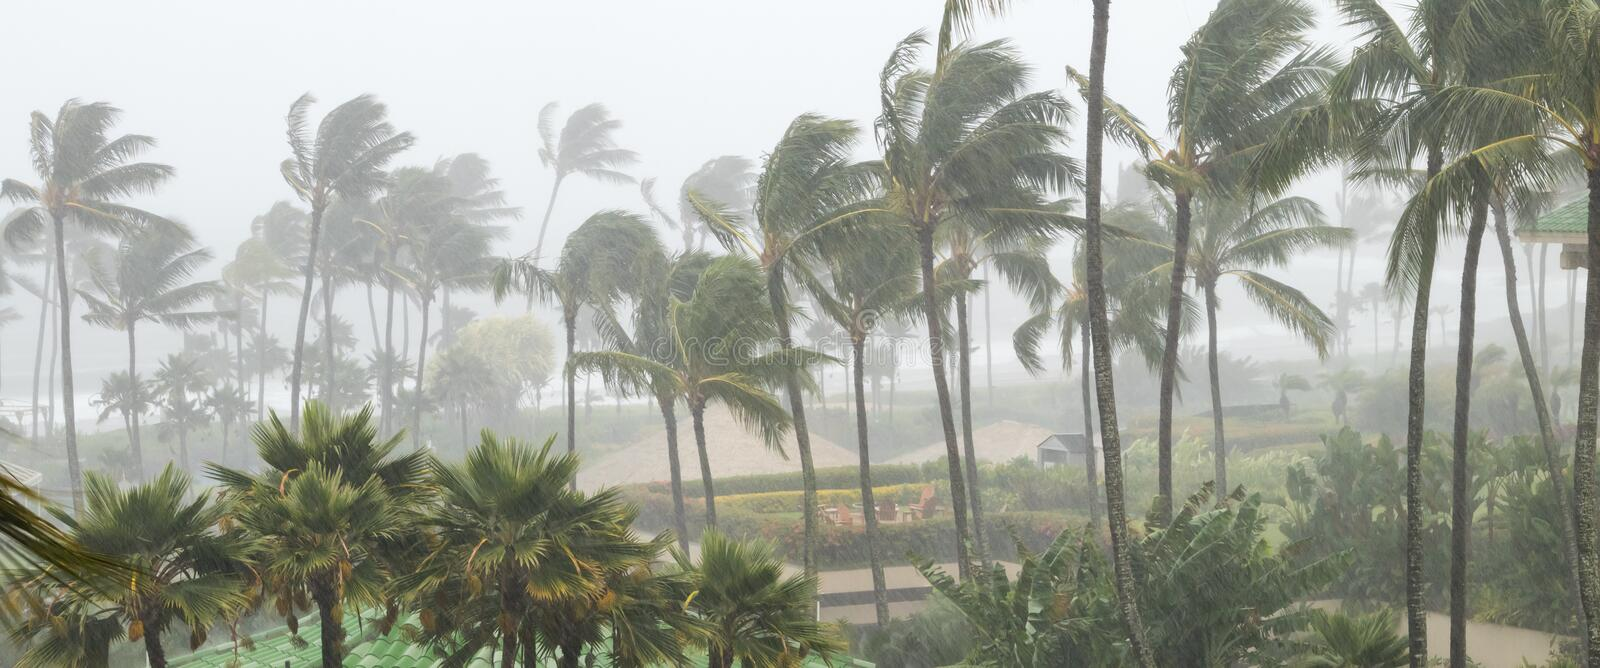 Palm trees blowing in the wind and rain as a hurricane nears royalty free stock image